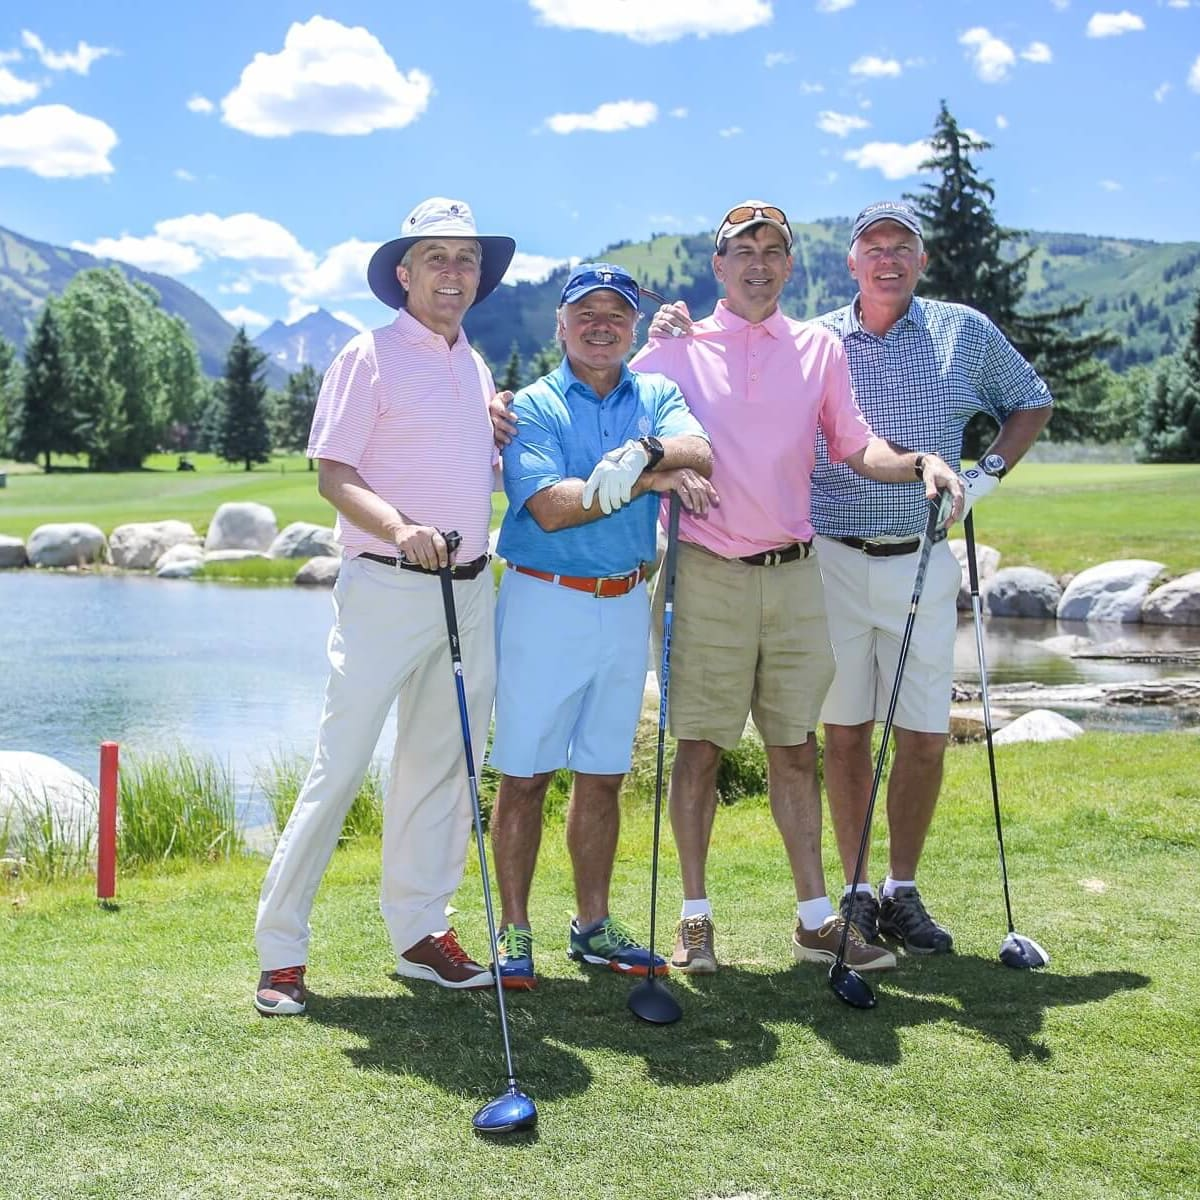 Houston Methodist in Aspen, July 2016,  Tom Elsenbrook, David Dominy, Les Csorba, Todd Brock